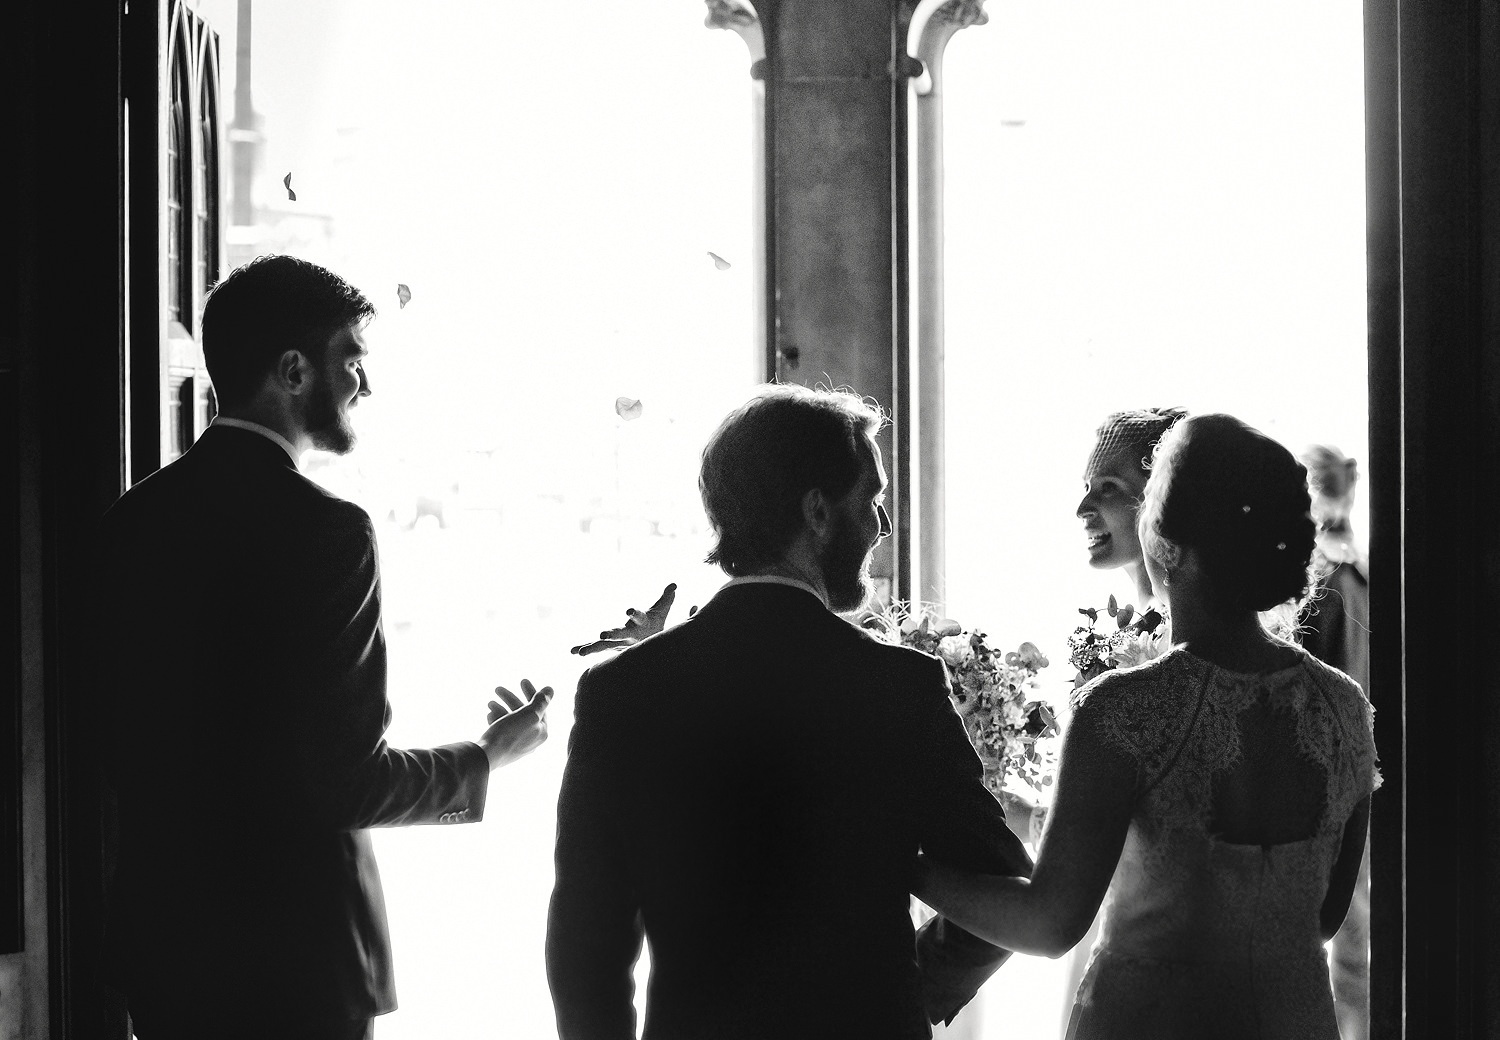 Bride and groom leaving church ceremony with their best man and chief bridesmaid